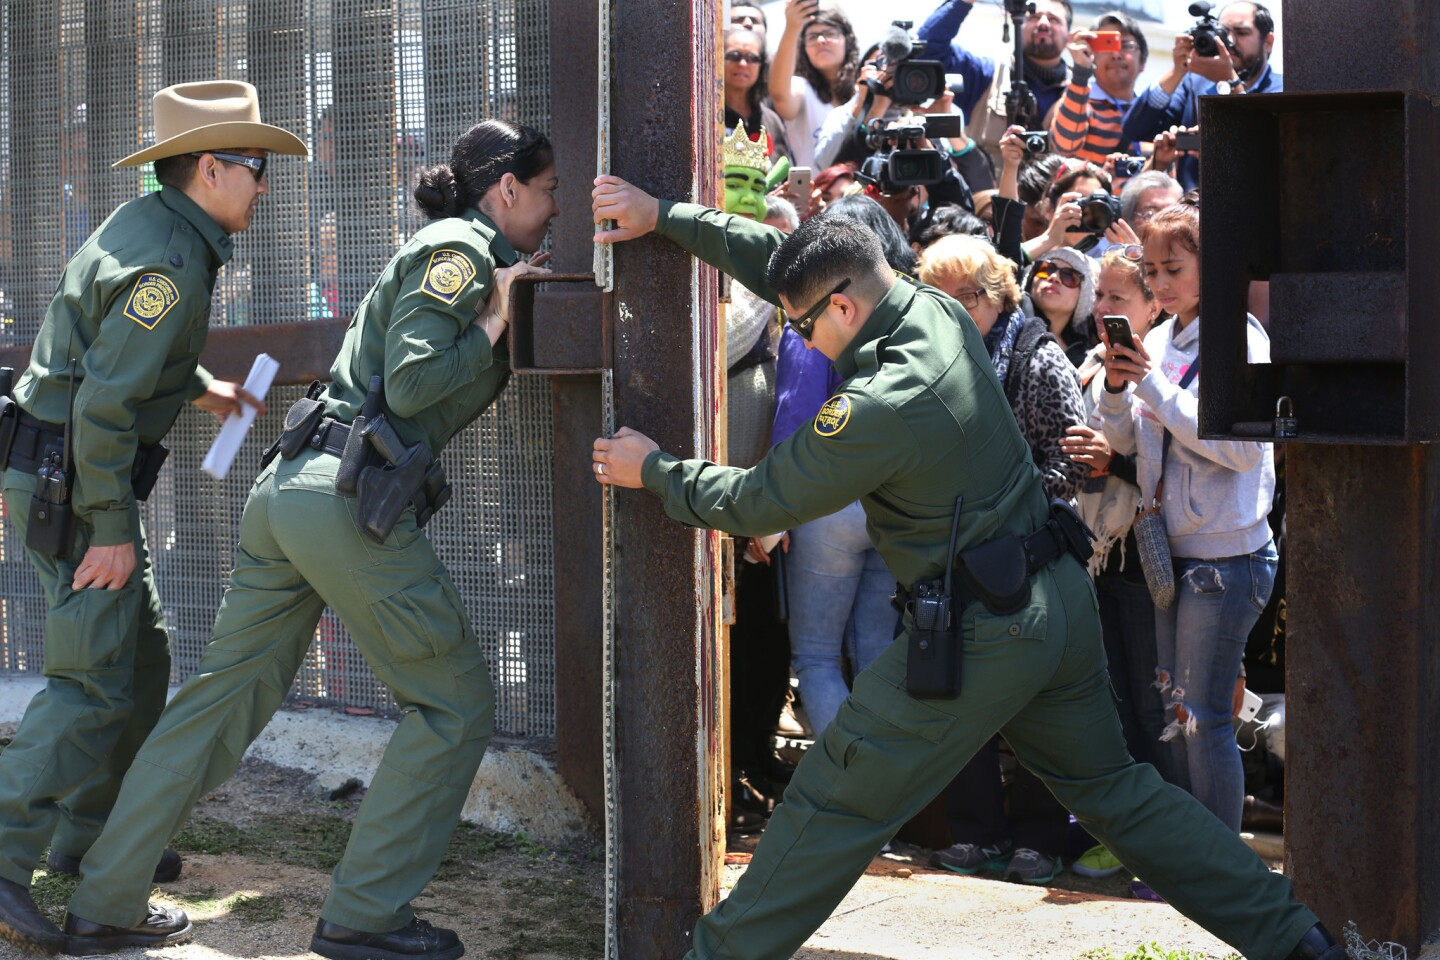 Border Patrol agents close the famous Door of Hope at Borderfield State Park